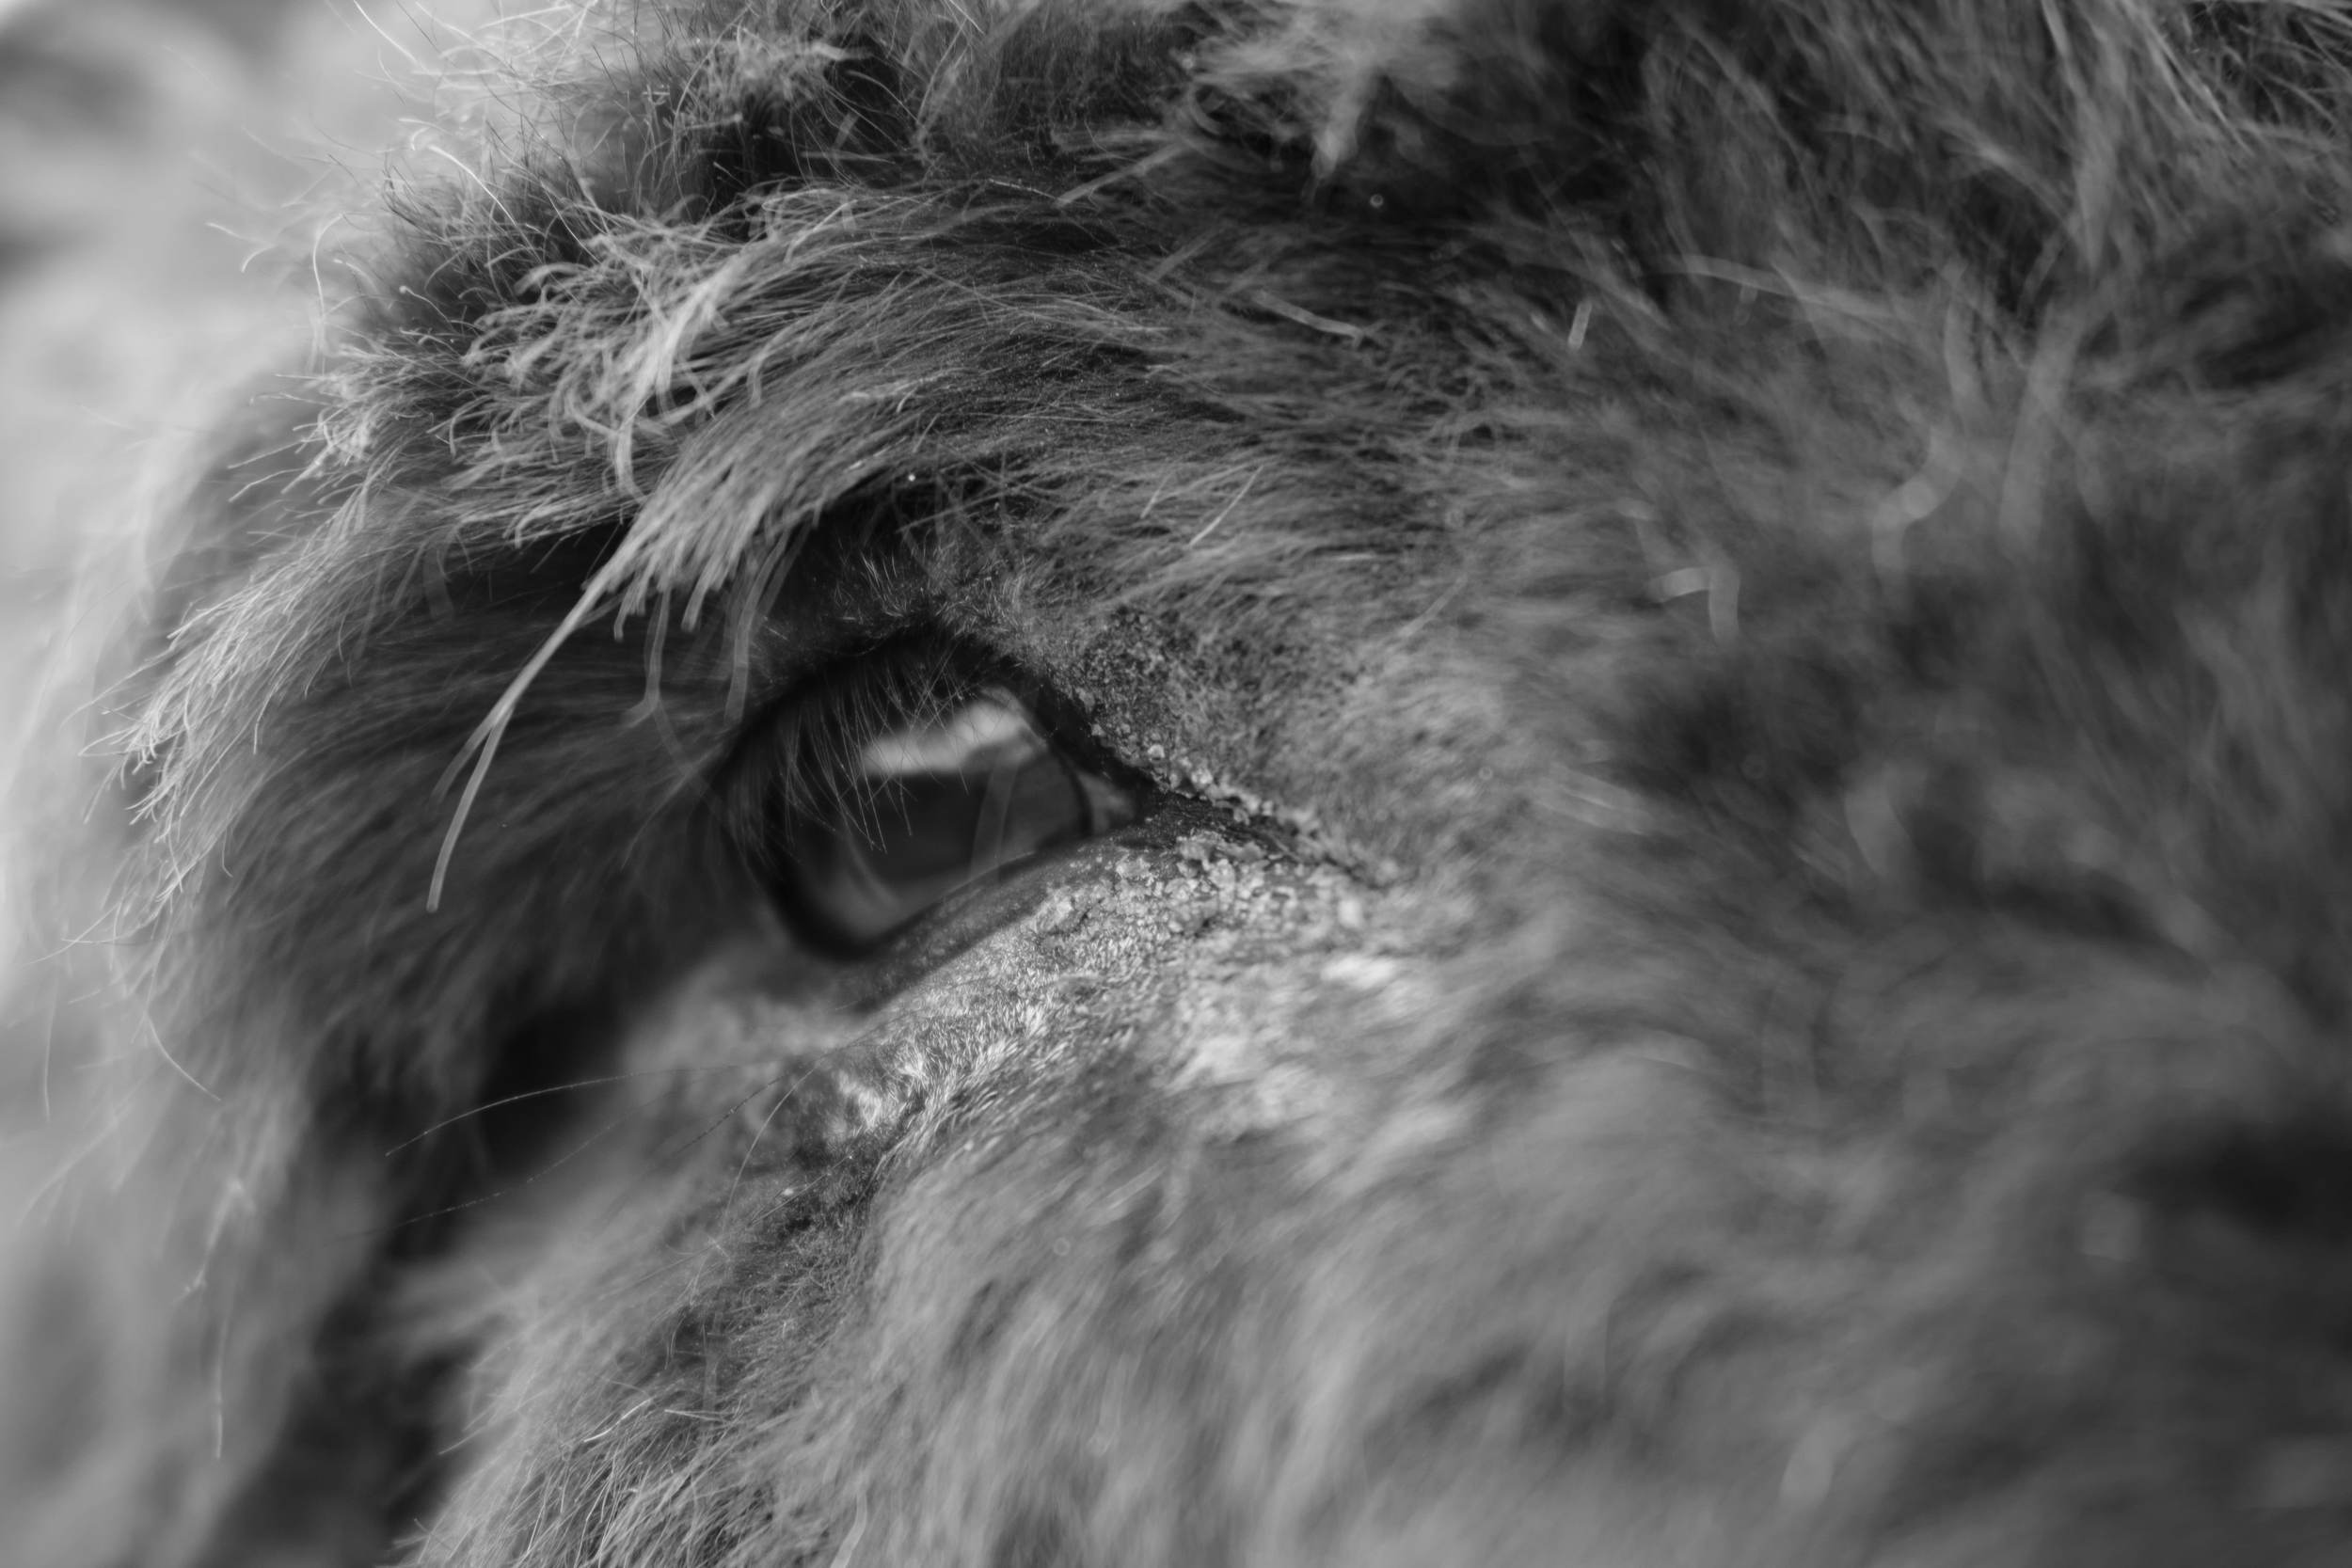 Black & White close up of donkey's eye at Eshottheugh Animal Park, Northumberland